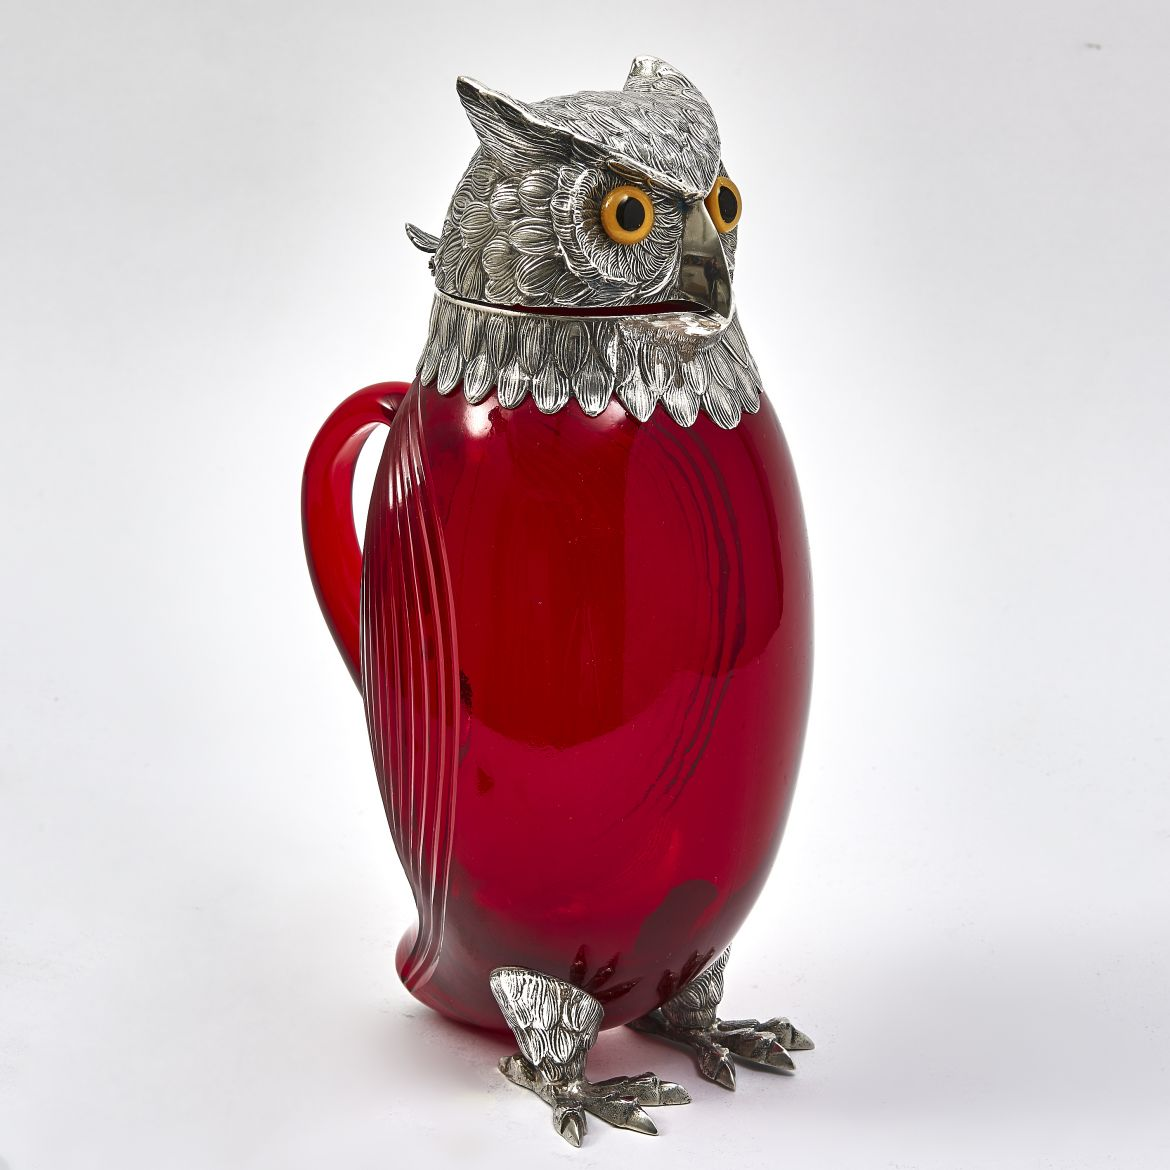 Ruby Glass Owl Claret Jug